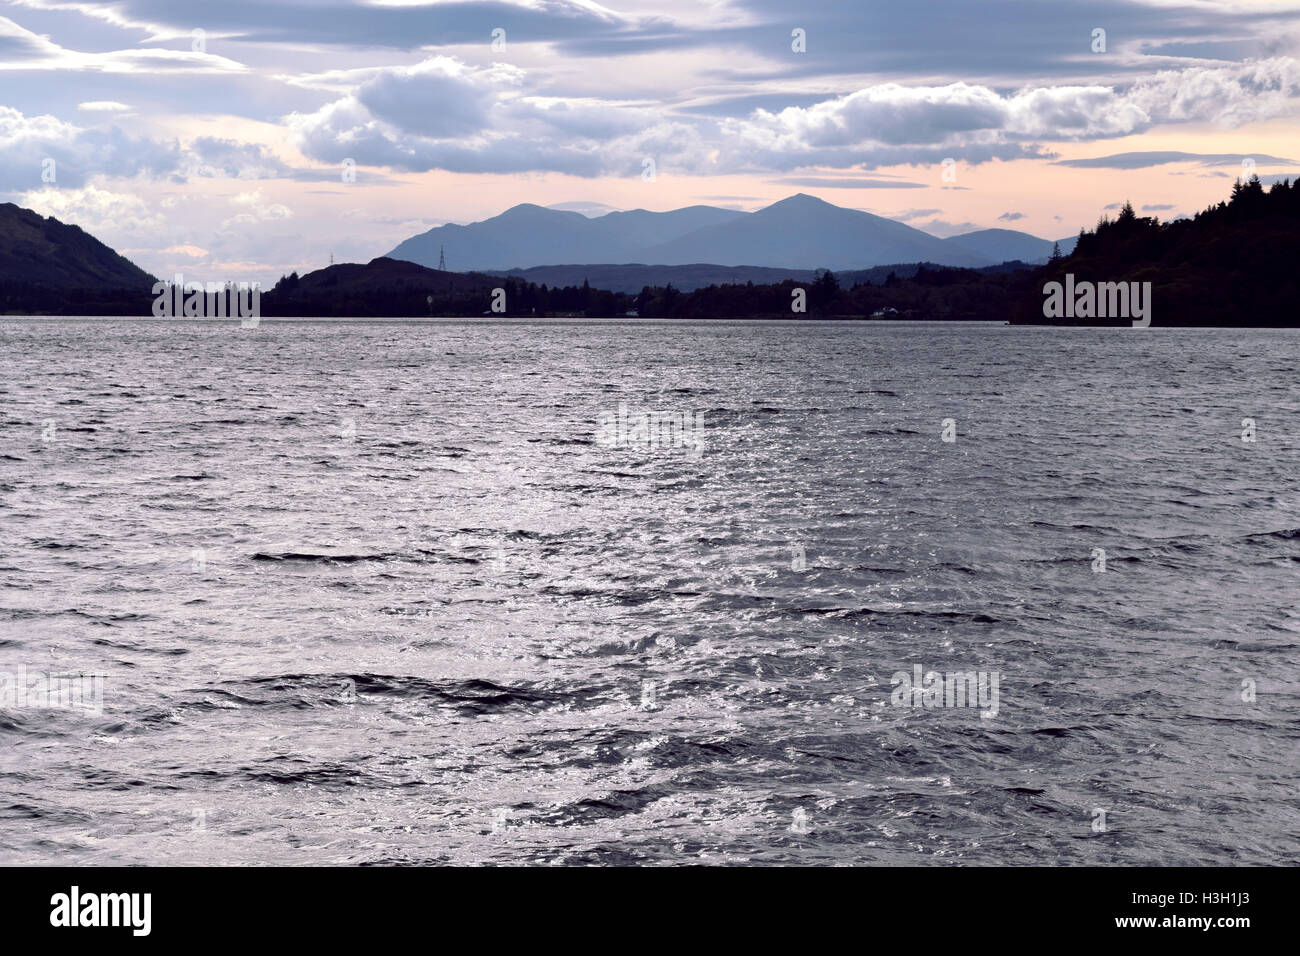 Loch Ness near Fort Augustus - Loch Ness Monster hunting! August ...